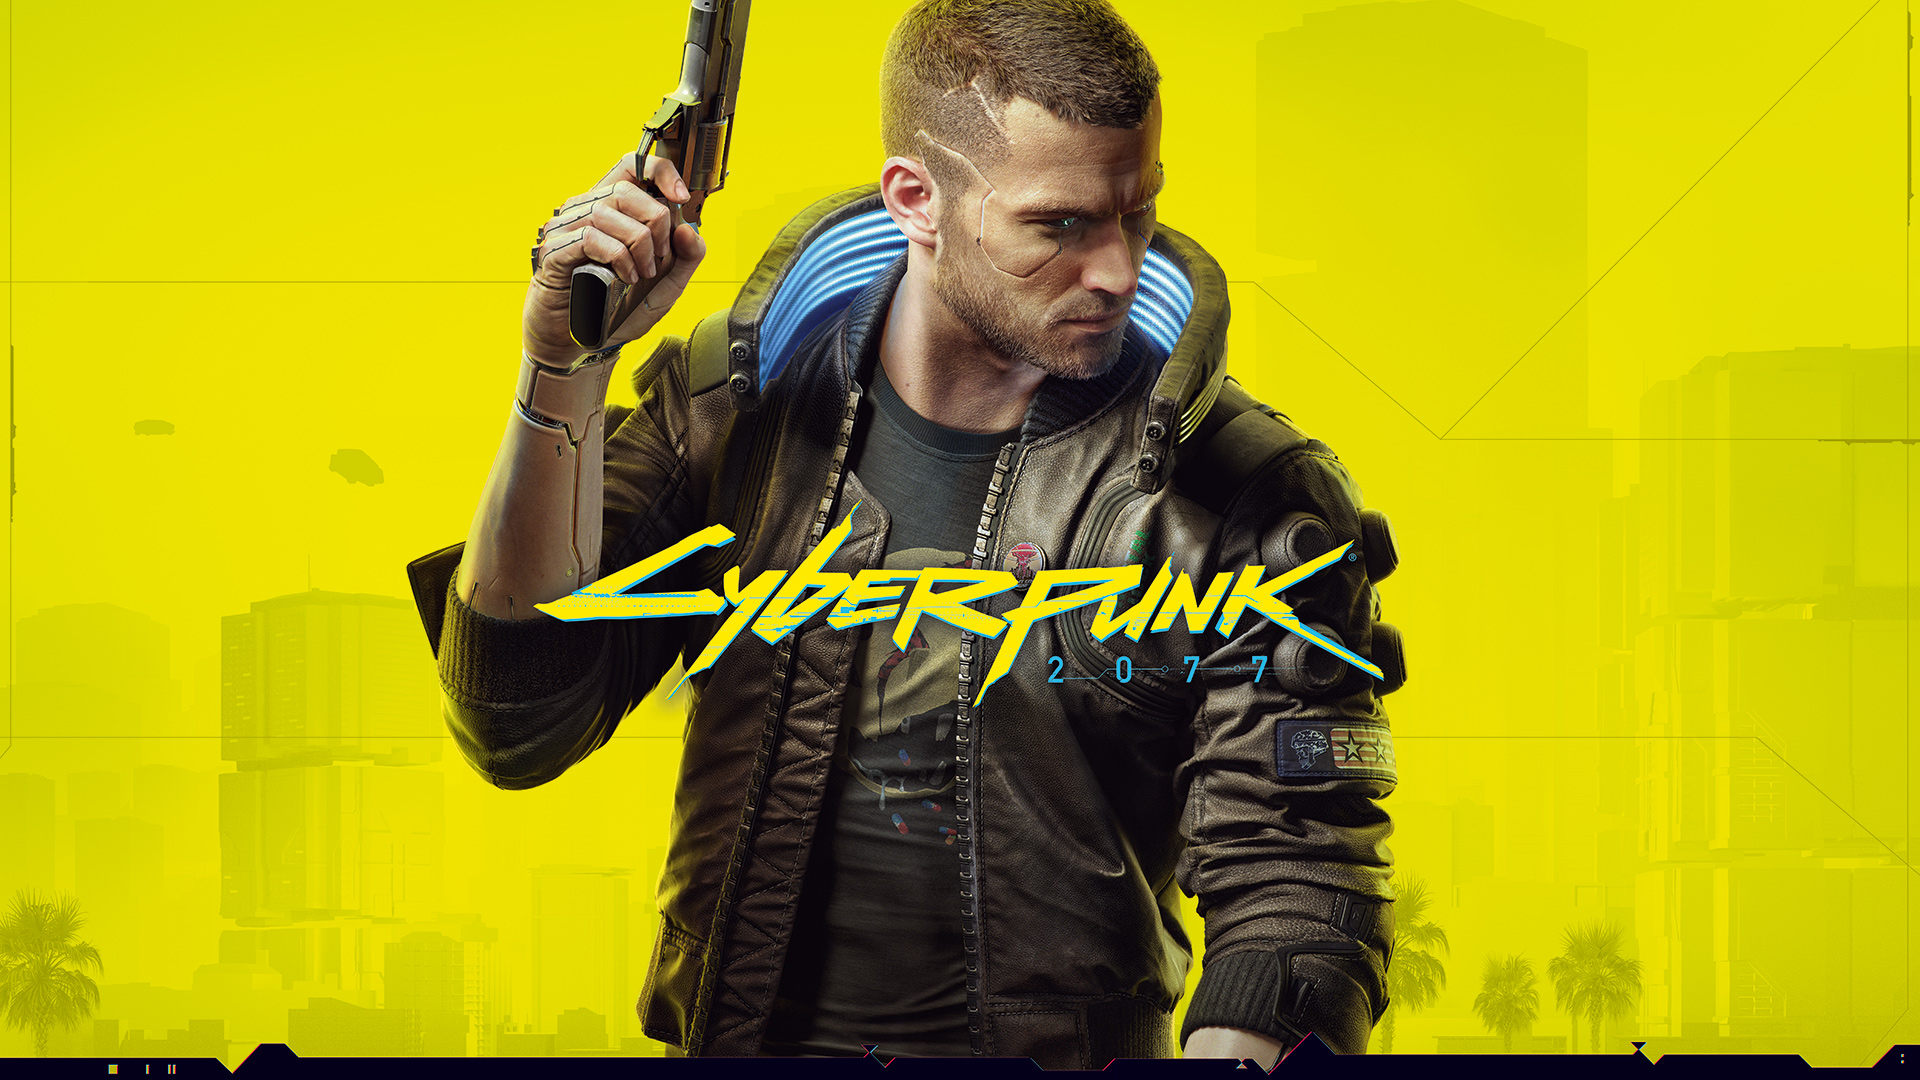 Cyberpunk 2077 releases version 1.04 on PC, PS4 and Xbox One